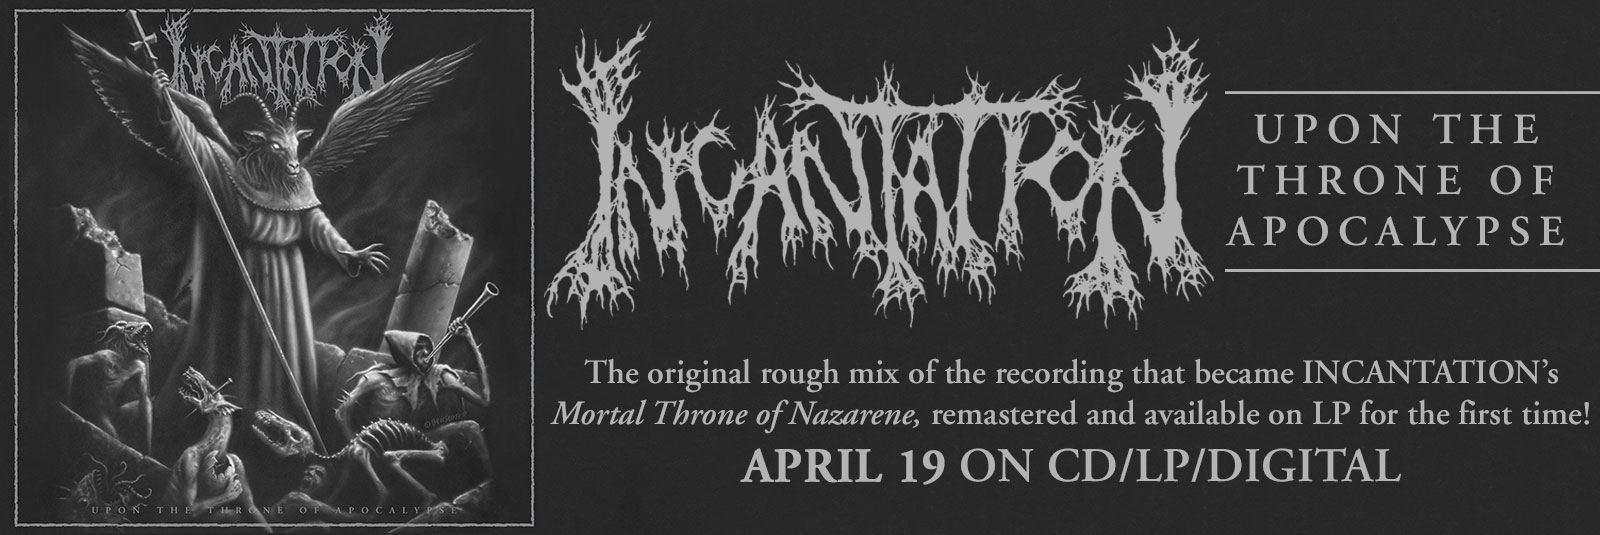 Incantation-Upon-The-Throne-Of-Apocalypse-Death-Metal-Reissue-Relapse